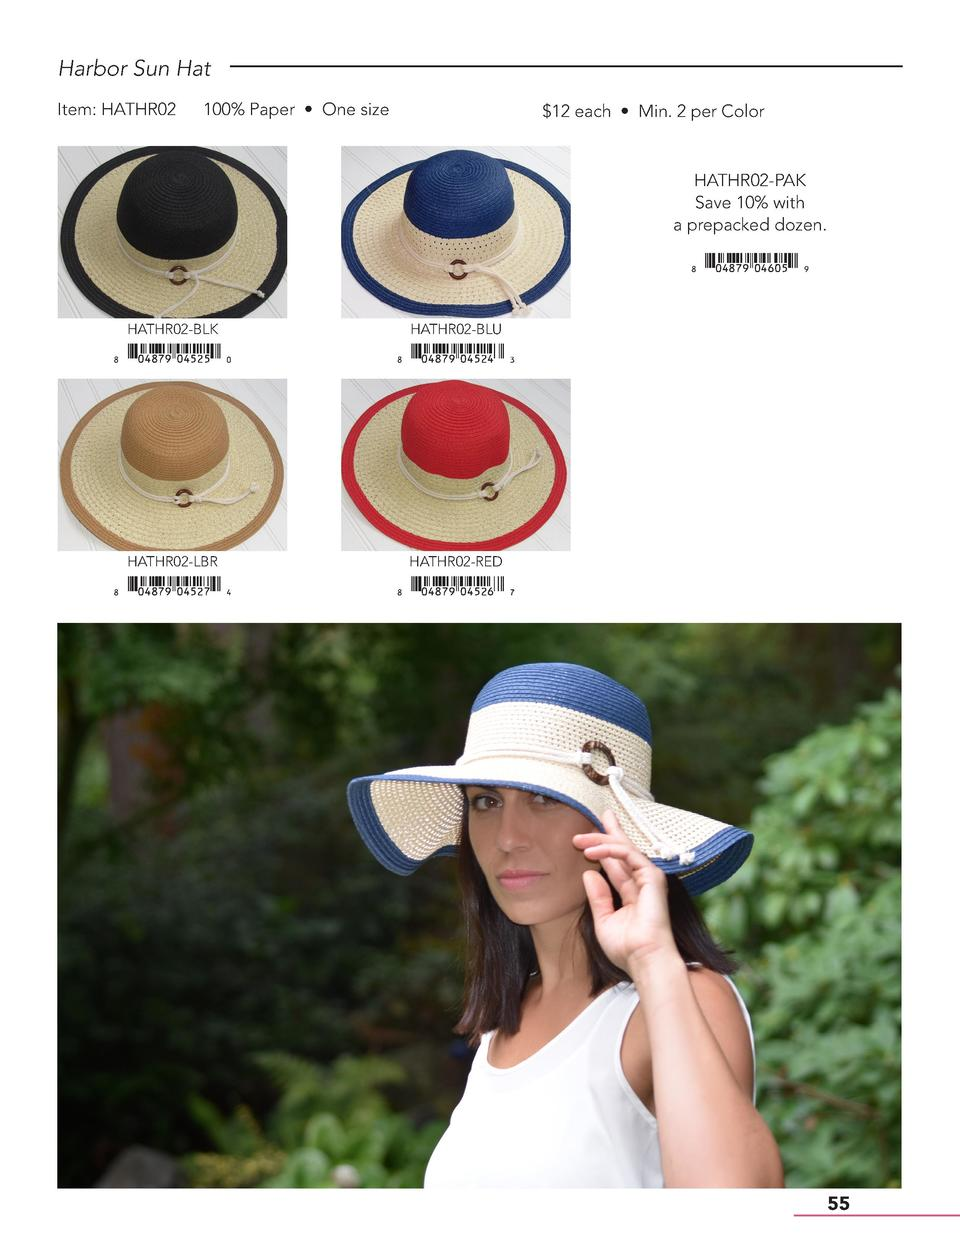 Harbor Sun Hat Item  HATHR02  100  Paper     One size   12 each     Min. 2 per Color  HATHR02-PAK Save 10  with a prepacke...